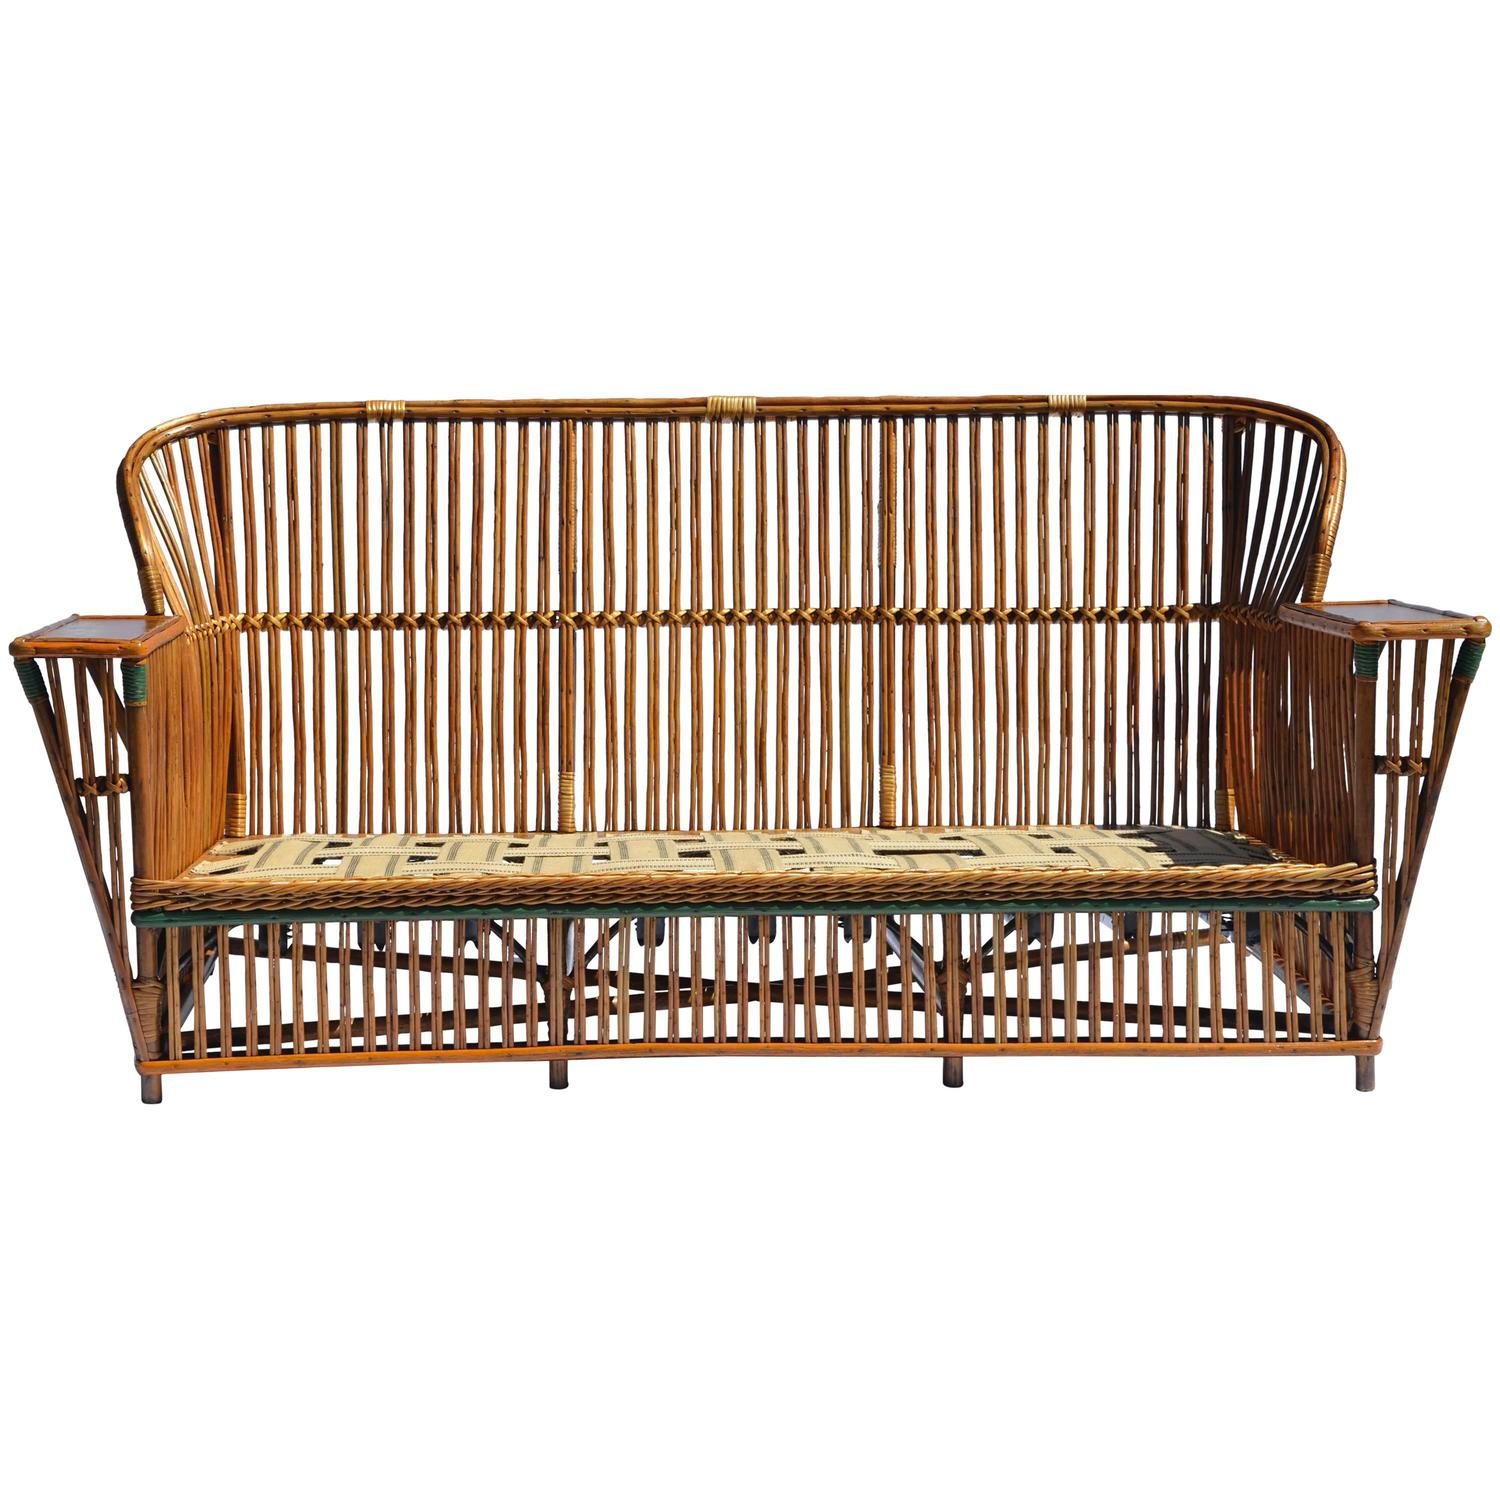 Antique Stick Wicker Sofa at 1stdibs : 4460373z from www.1stdibs.com size 1500 x 1500 jpeg 210kB